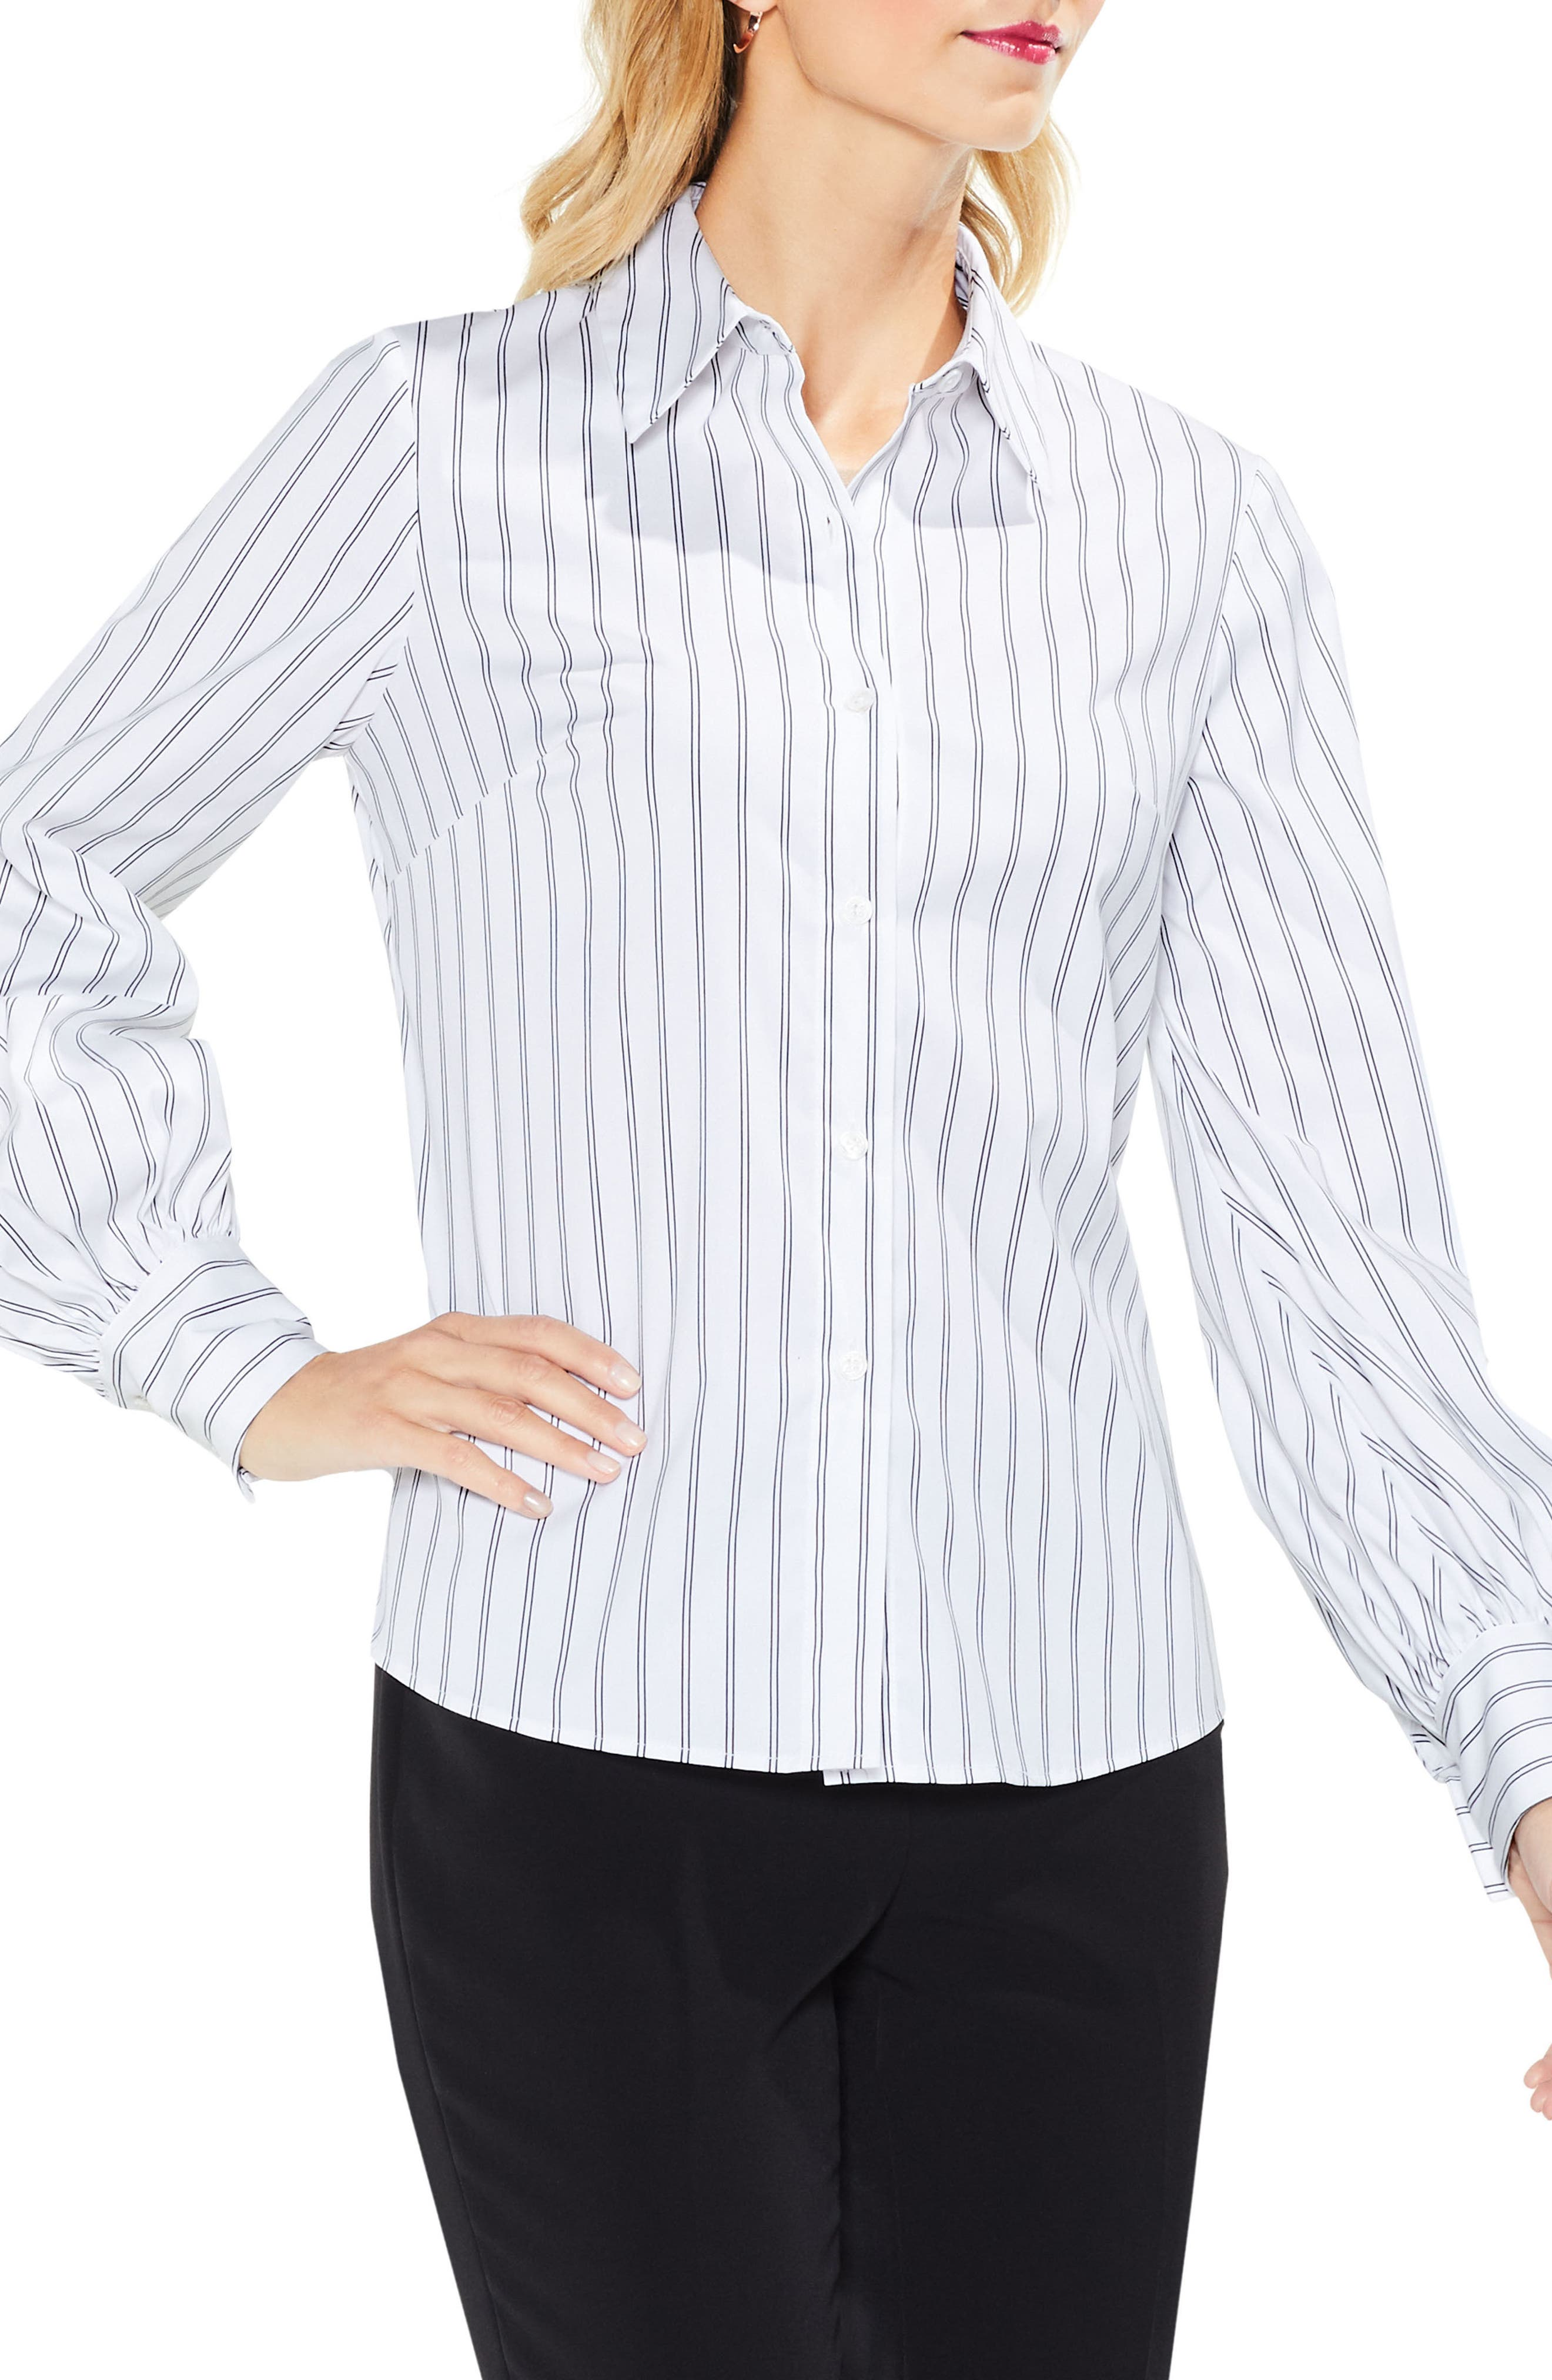 Main Image - Vince Camuto Stripe Lace-Up Shirt